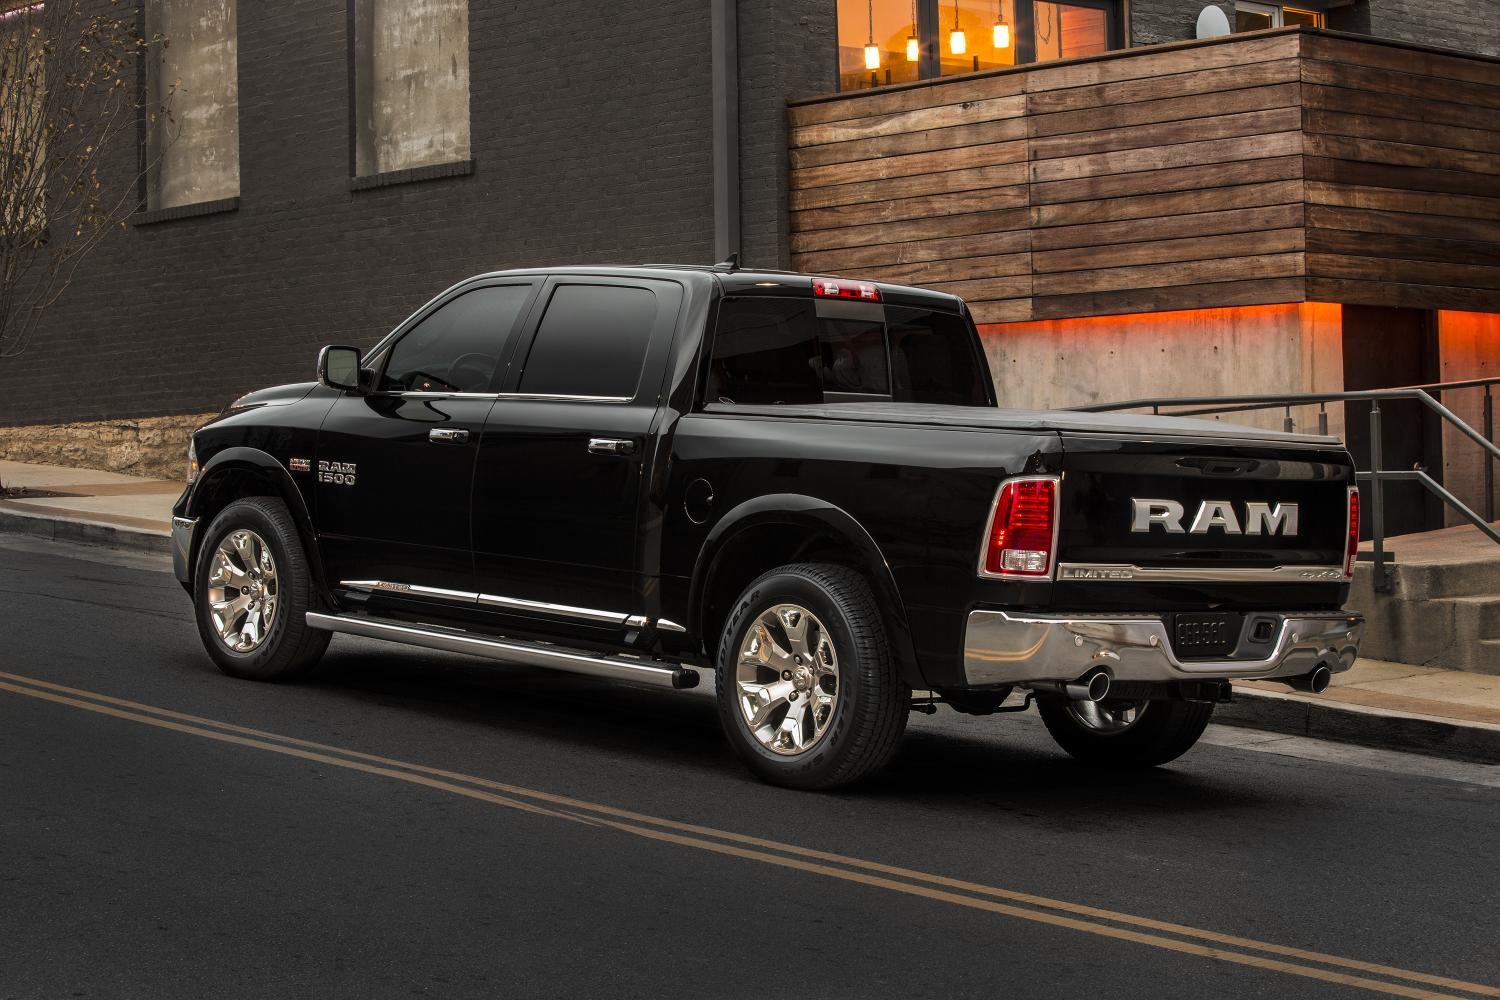 Ram goes big, bold with new Laramie Limited | Chrysler Capital